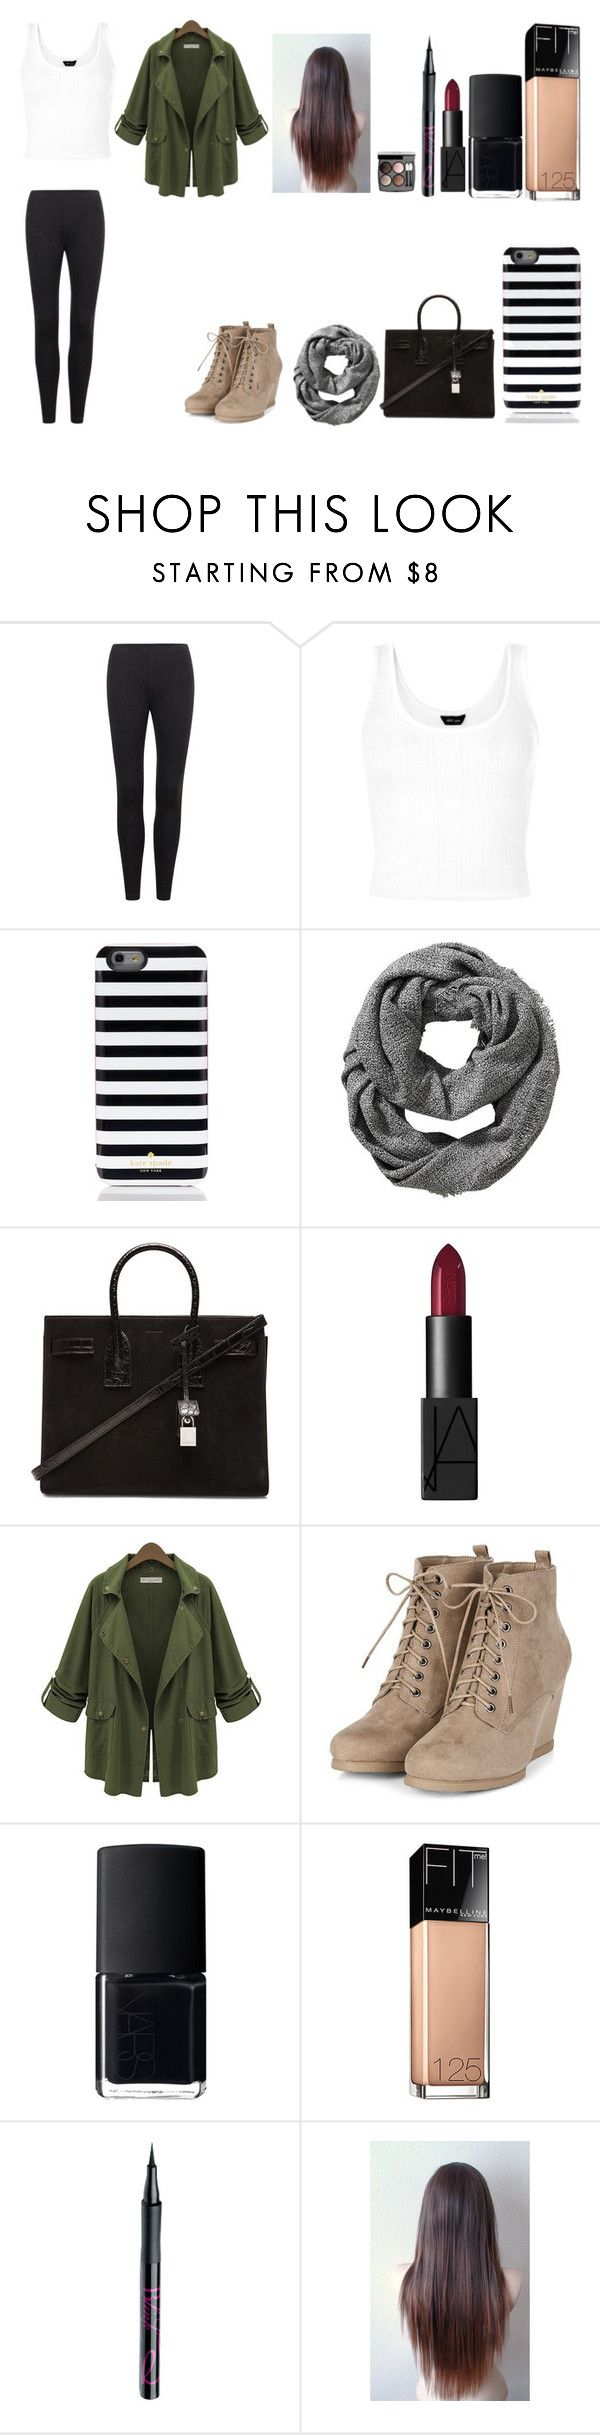 """""""Untitled #364"""" by kalieh092 on Polyvore featuring Kate Spade, Old Navy, Yves Saint Laurent, NARS Cosmetics, Chanel, Maybelline and Barry M"""